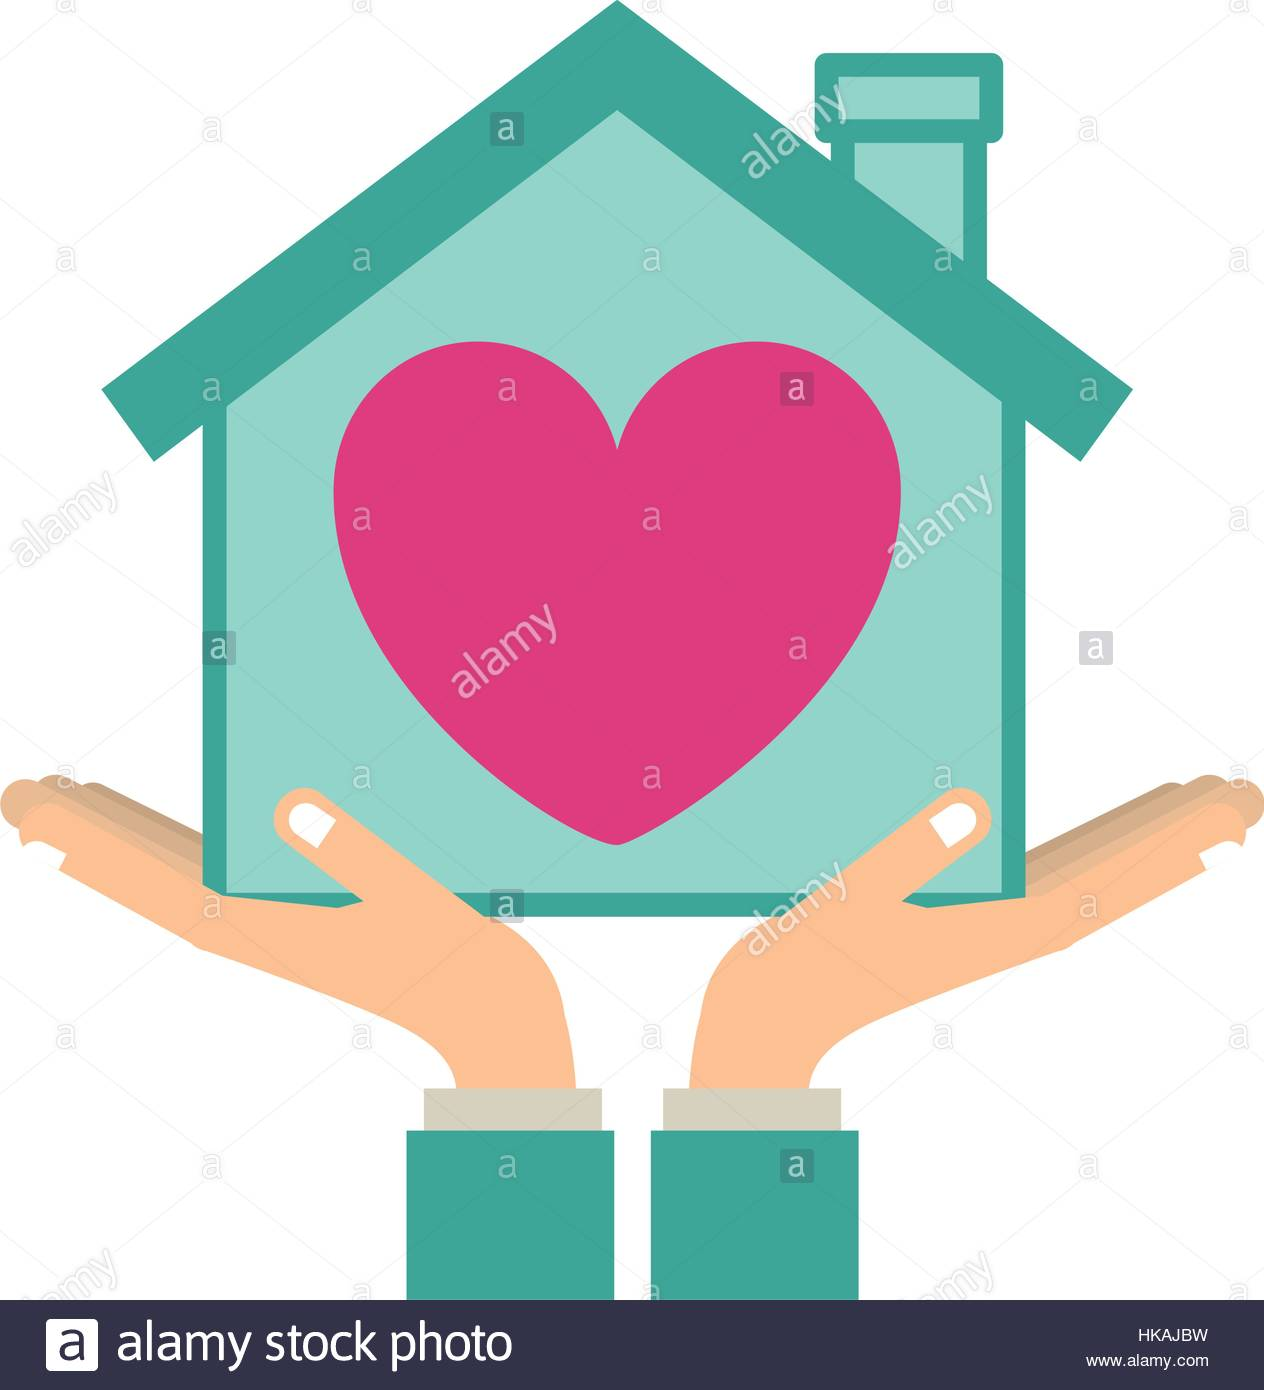 1264x1390 Colorful Sticker Silhouette Of Hands Holding A House With Heart